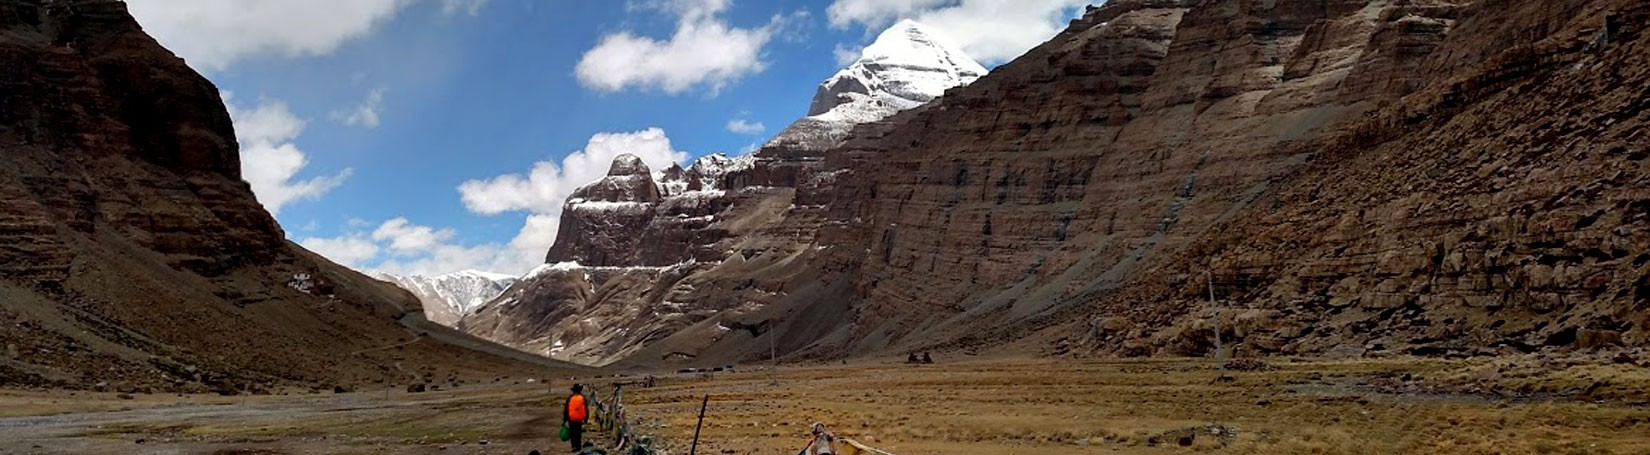 Mount Kailash Valley of the God